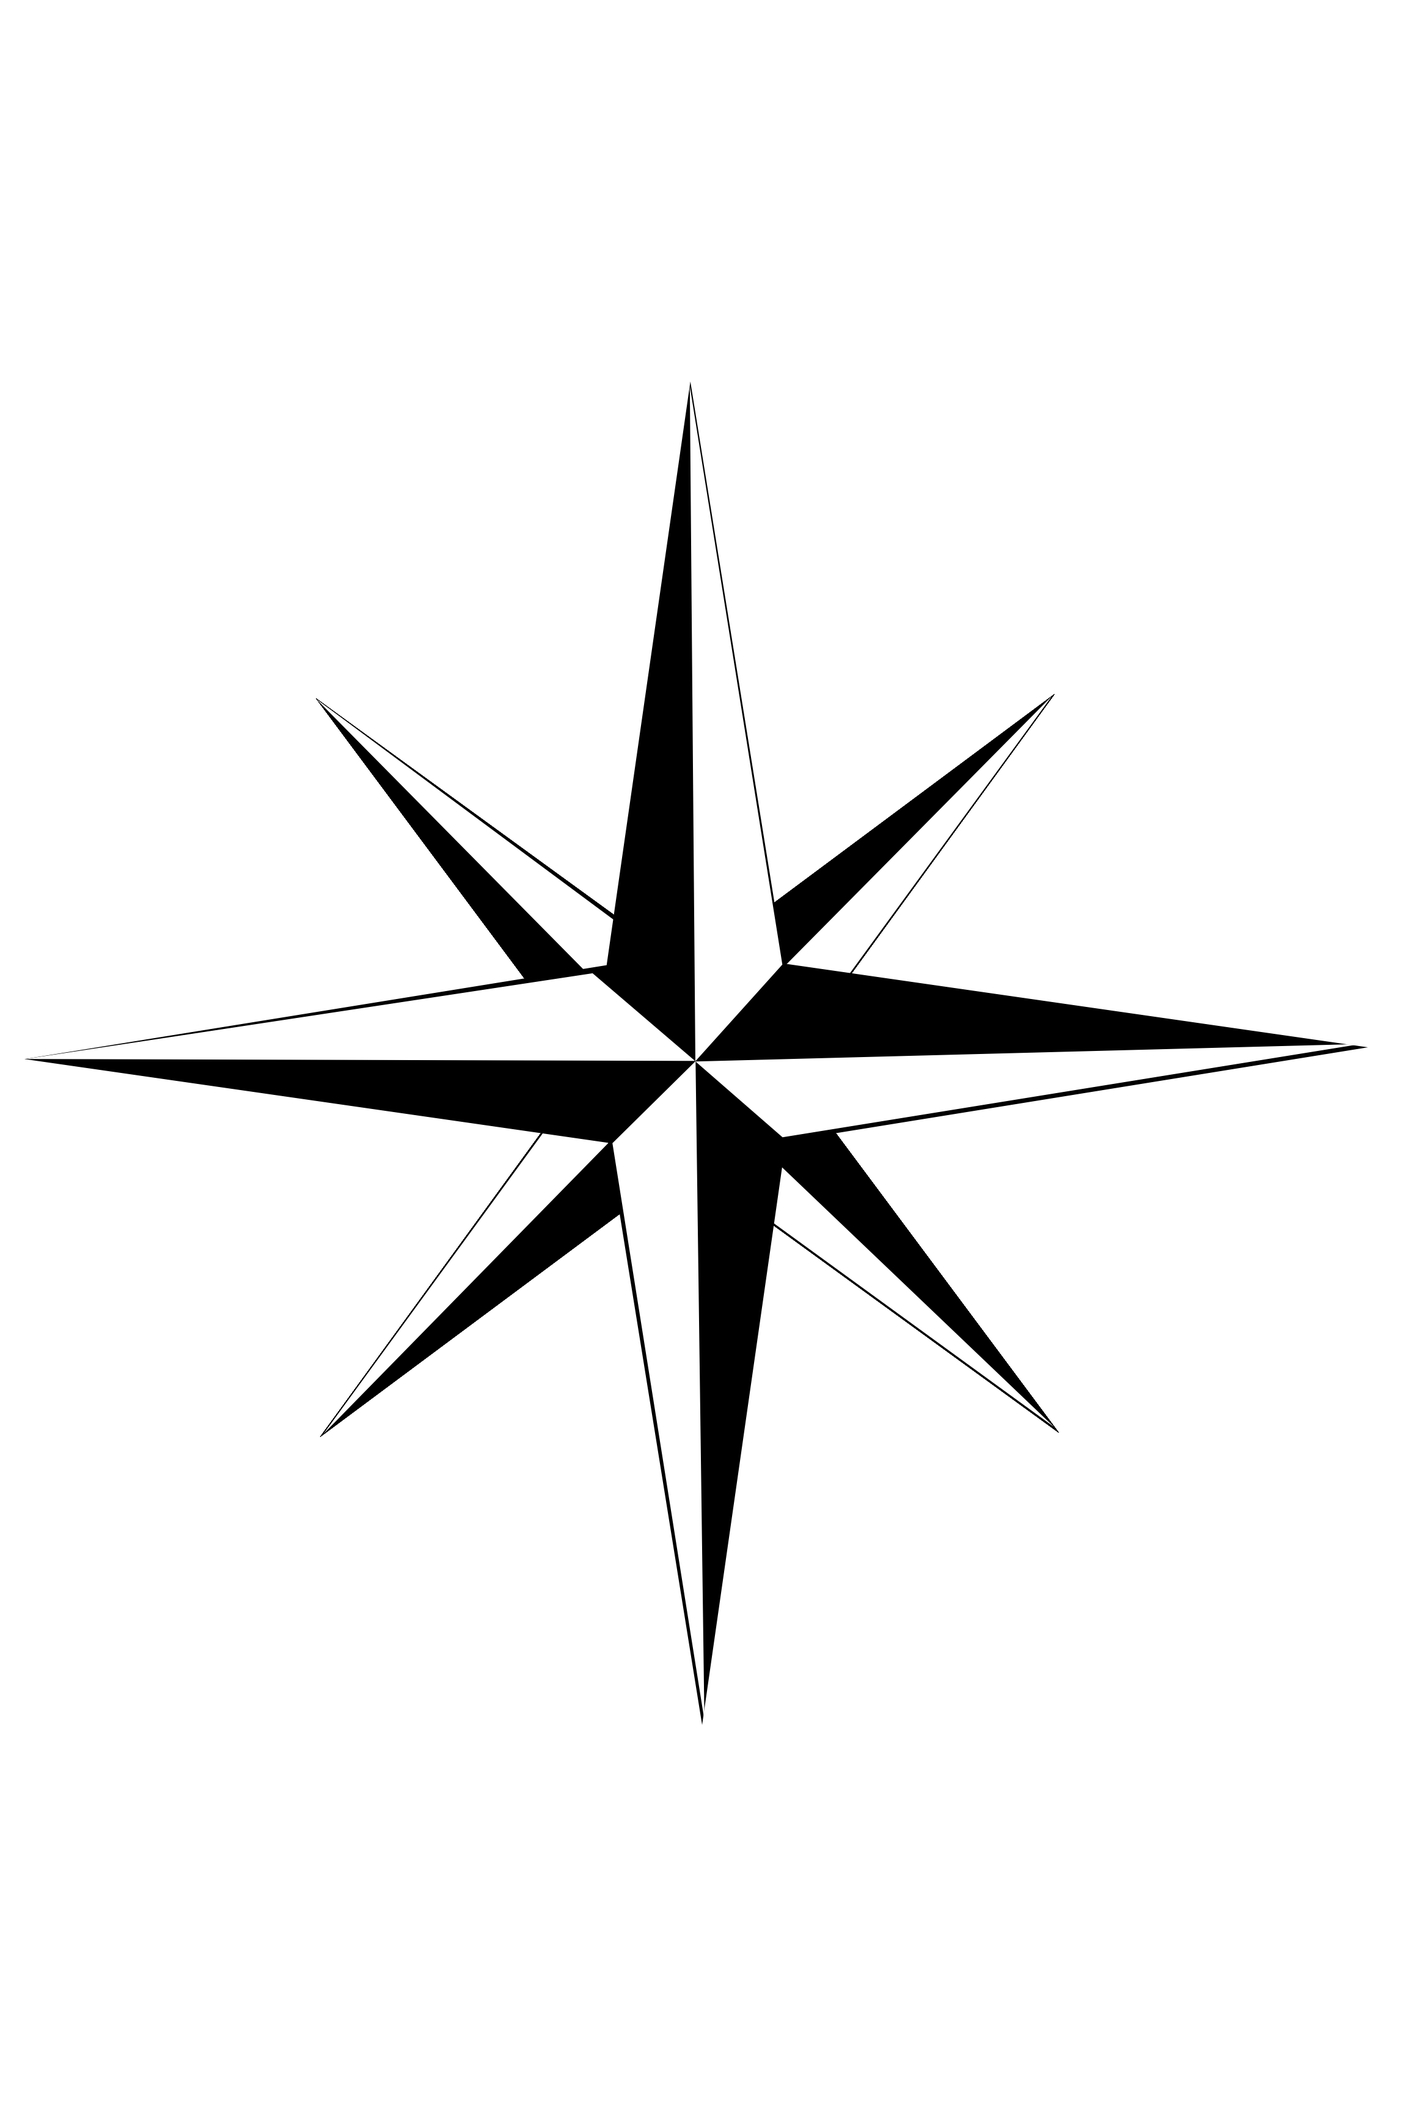 Cardinal Directions Compass Rose